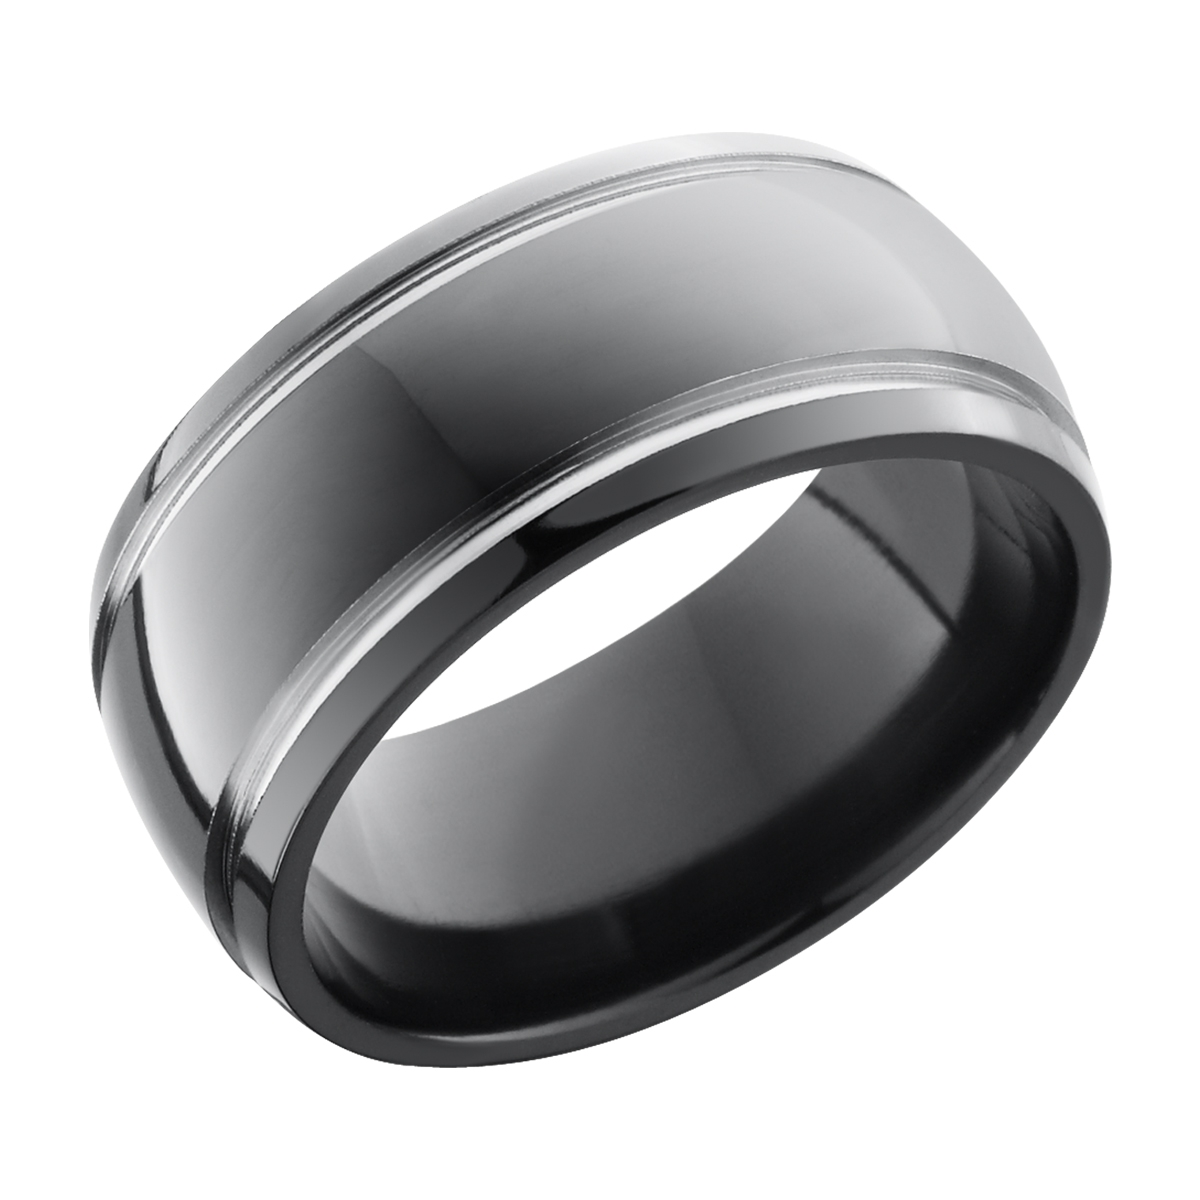 It is just a picture of Lashbrook Z44D/44W Polish Zirconium Wedding Ring or Band